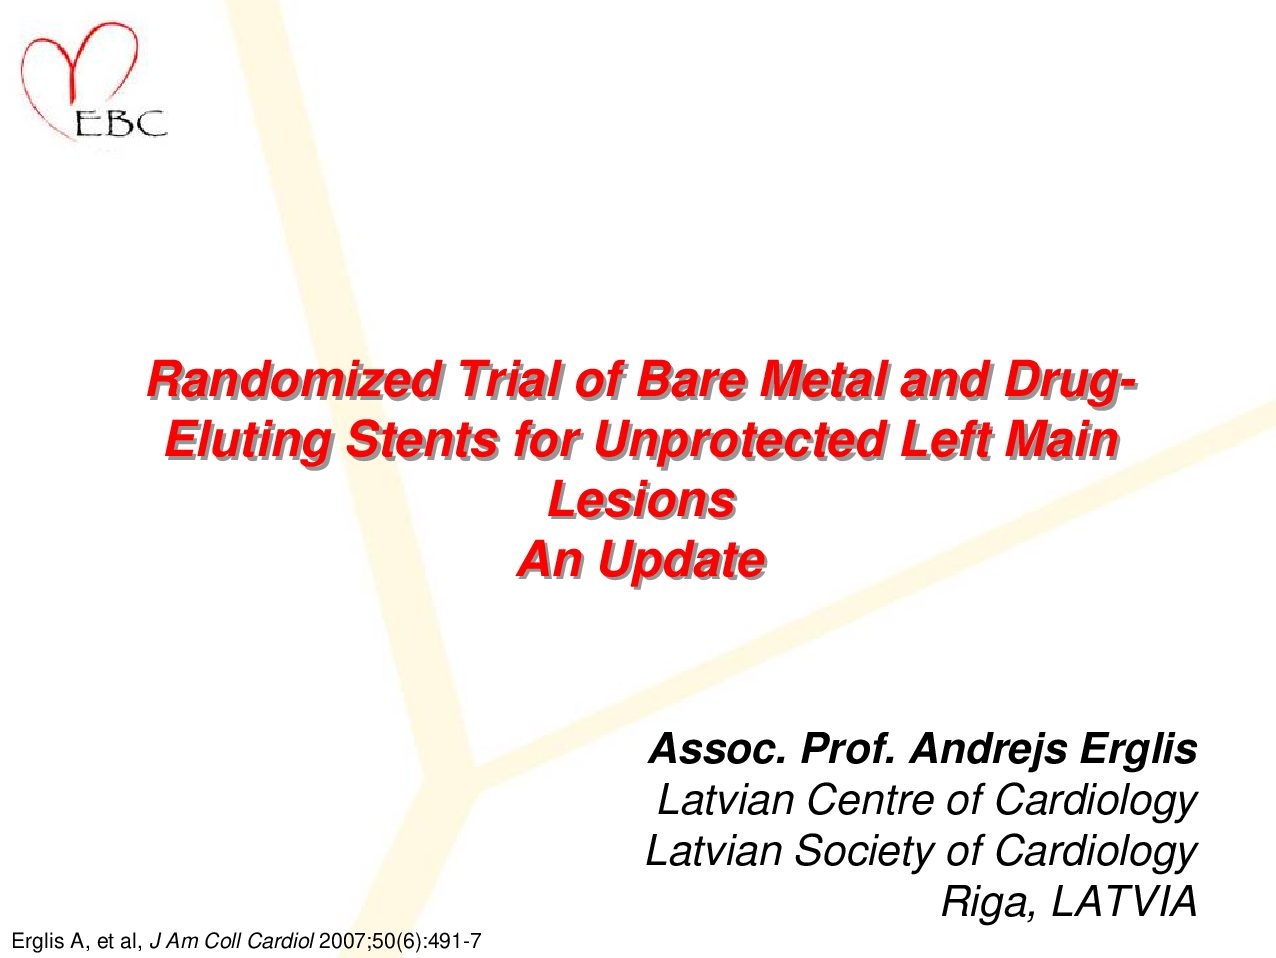 Randomized Trial of Bare Metal and Drug-Eluting Stents for Unprotected Left Main Lesions An Update